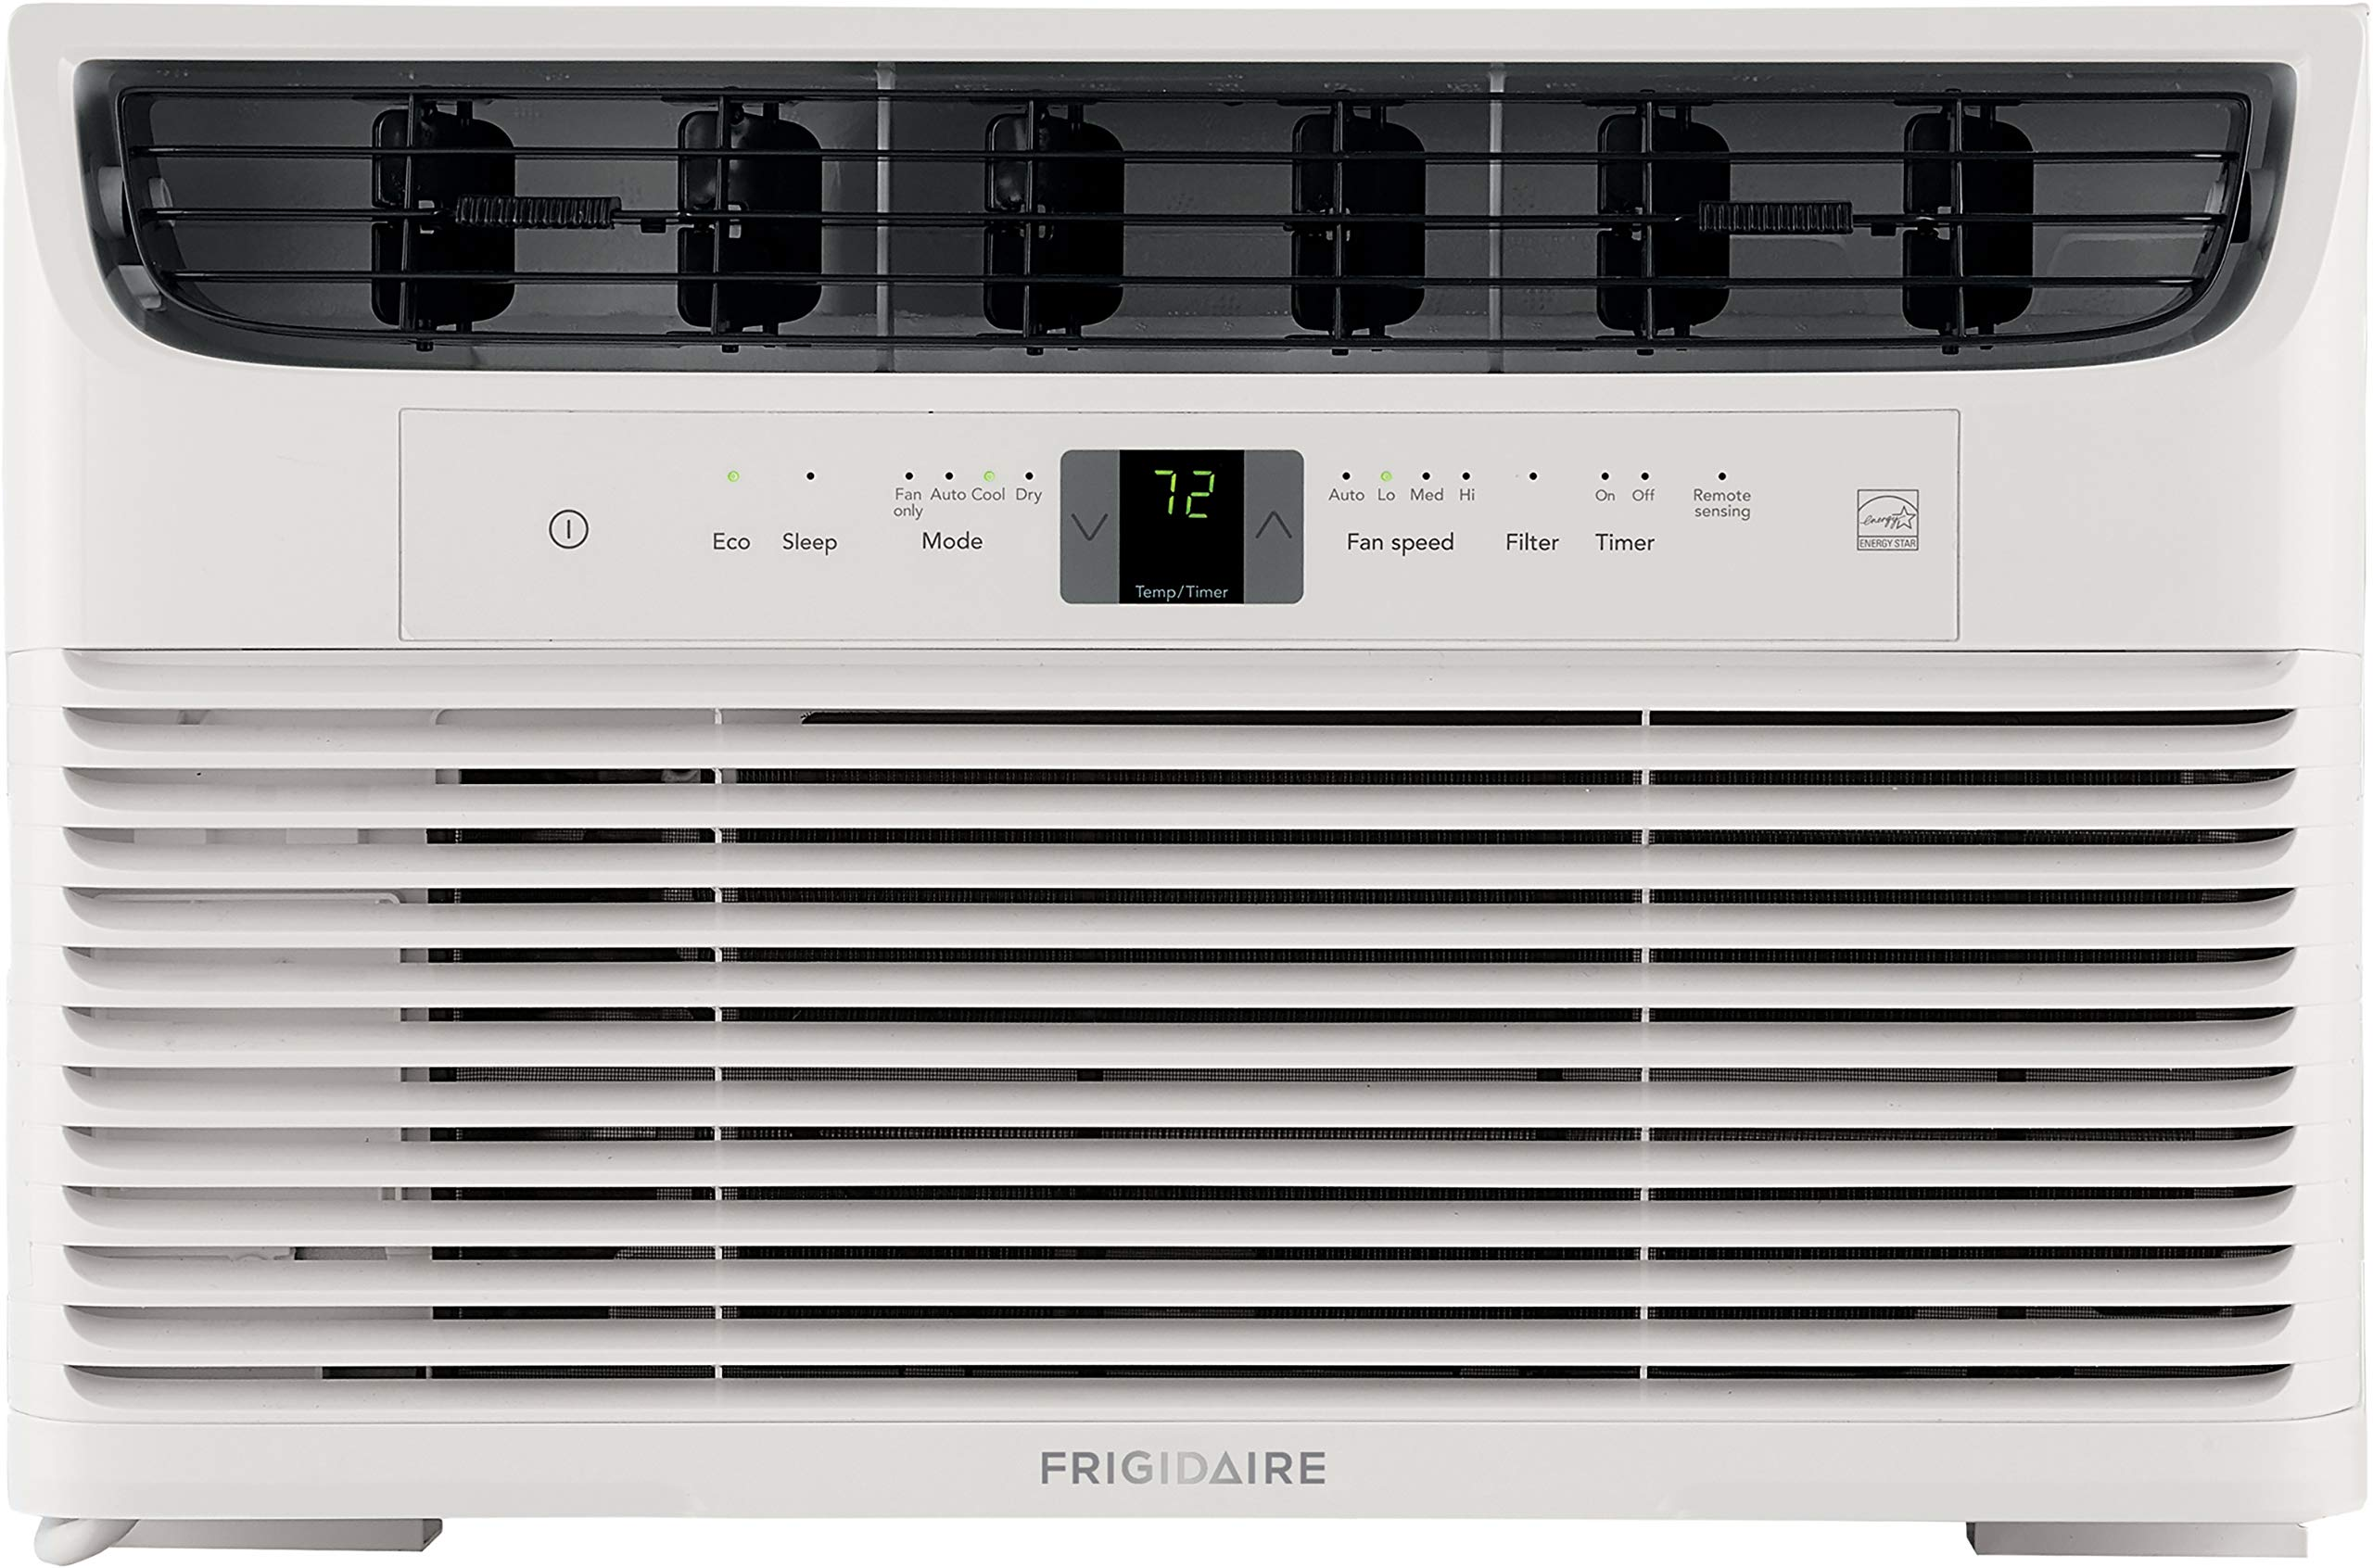 FRIGIDAIRE Energy Star 8,000 BTU 115V Window-Mounted Mini-Compact Air Conditioner with Full-Function Remote Control, White by FRIGIDAIRE